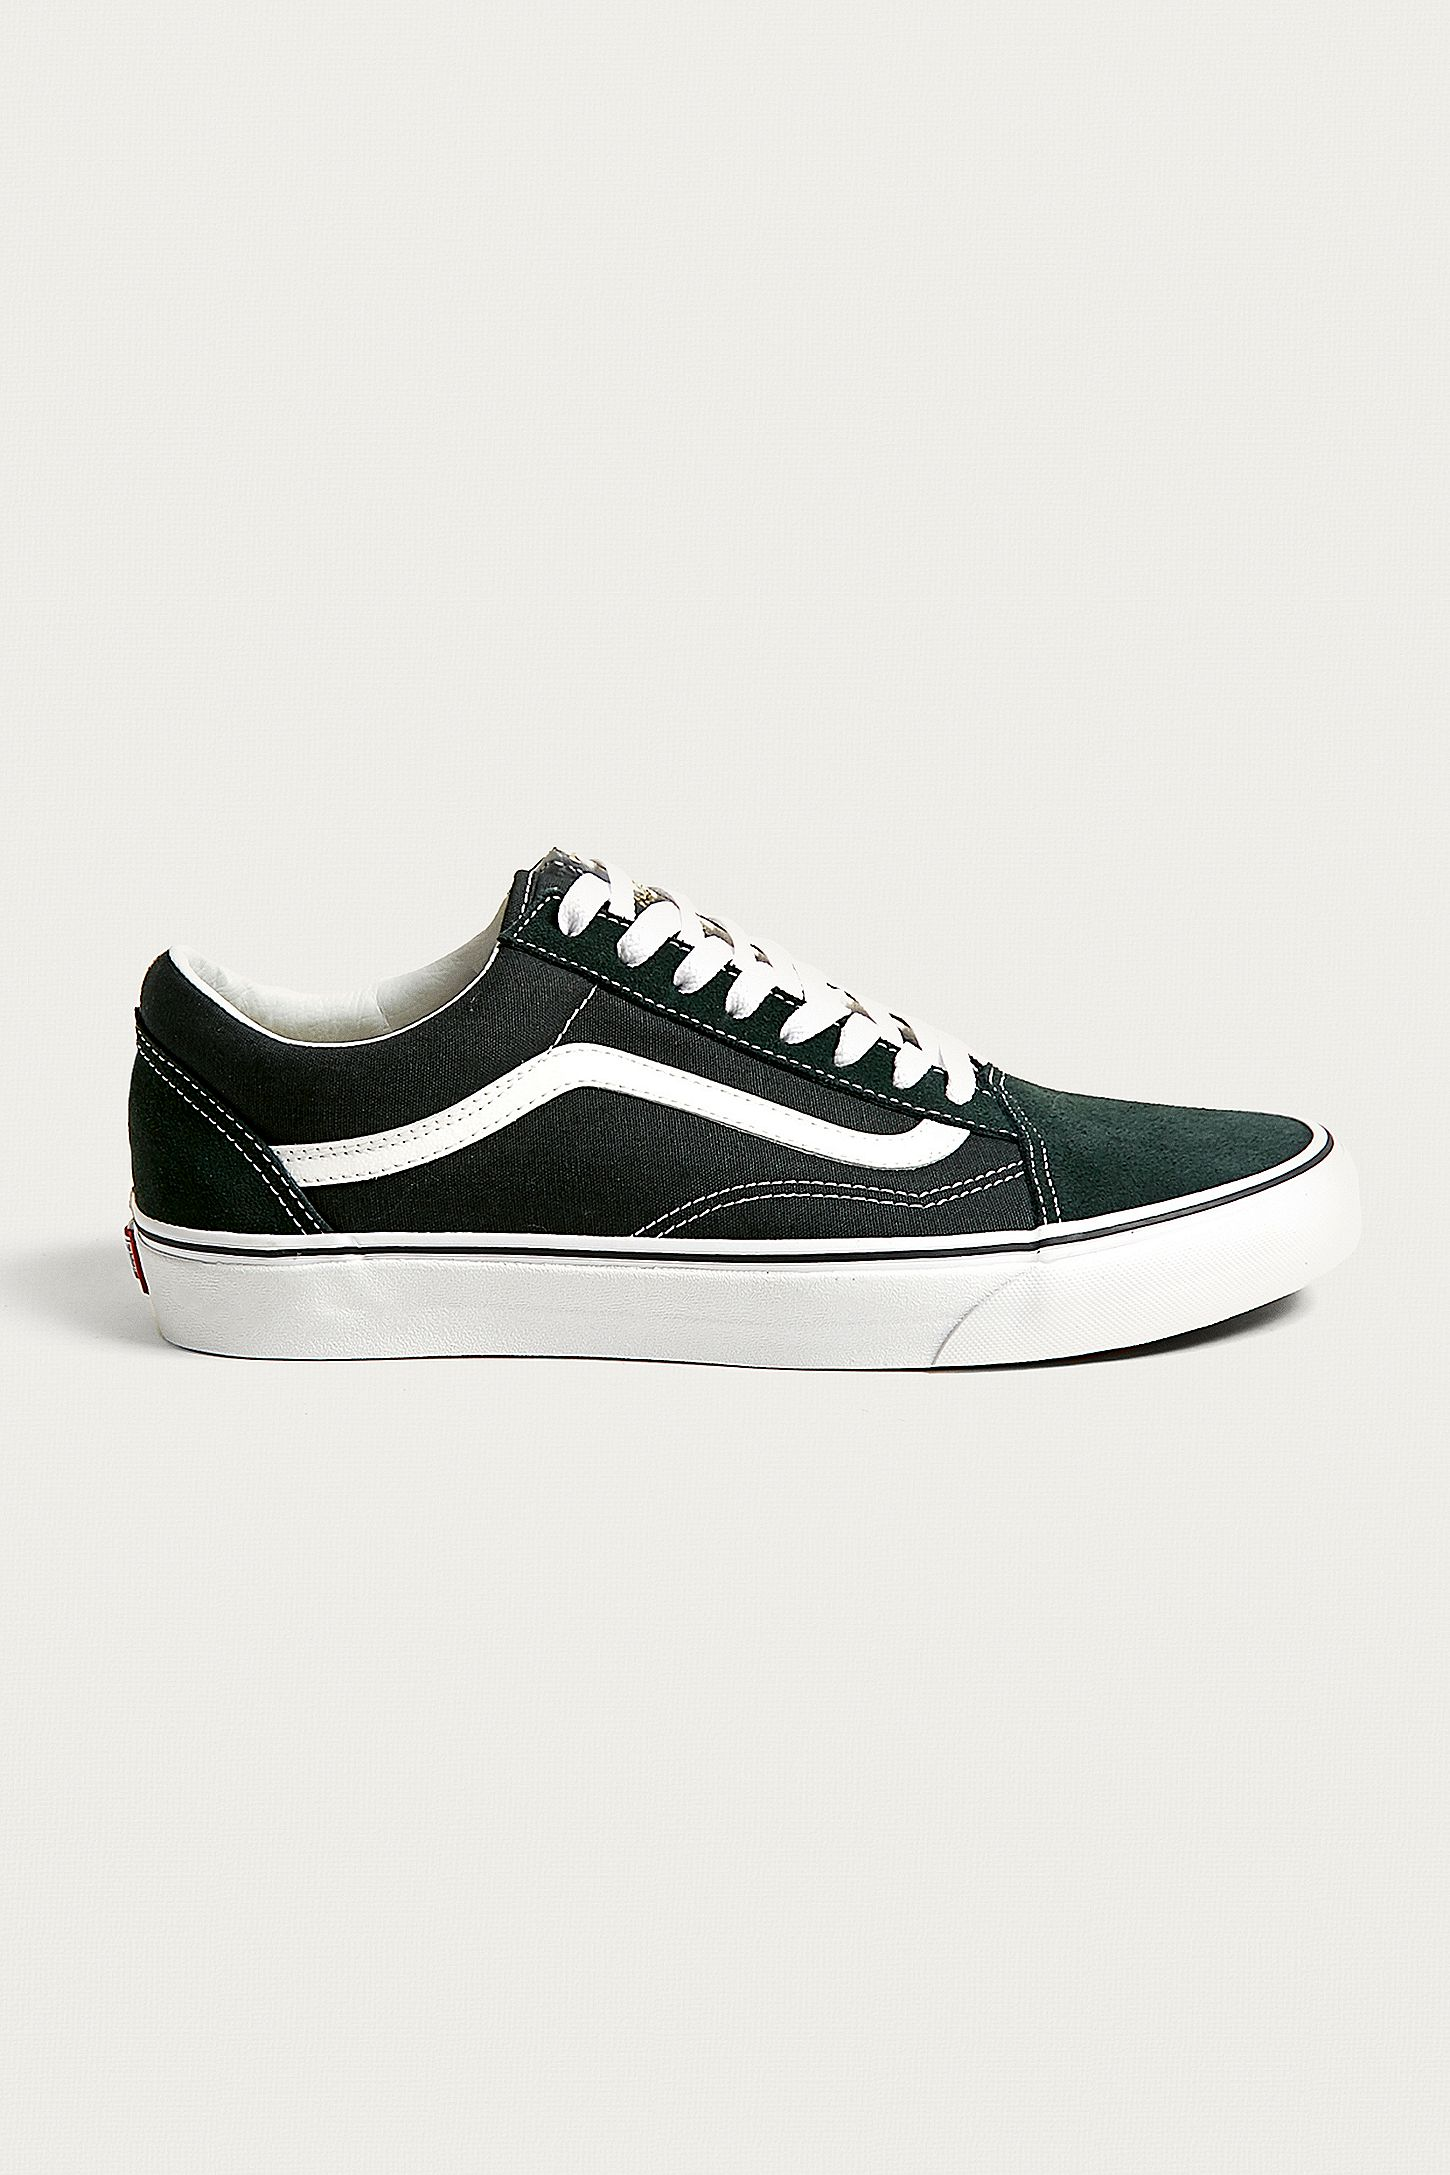 e6acb31a70 Vans Old Skool Midnight Green Trainers